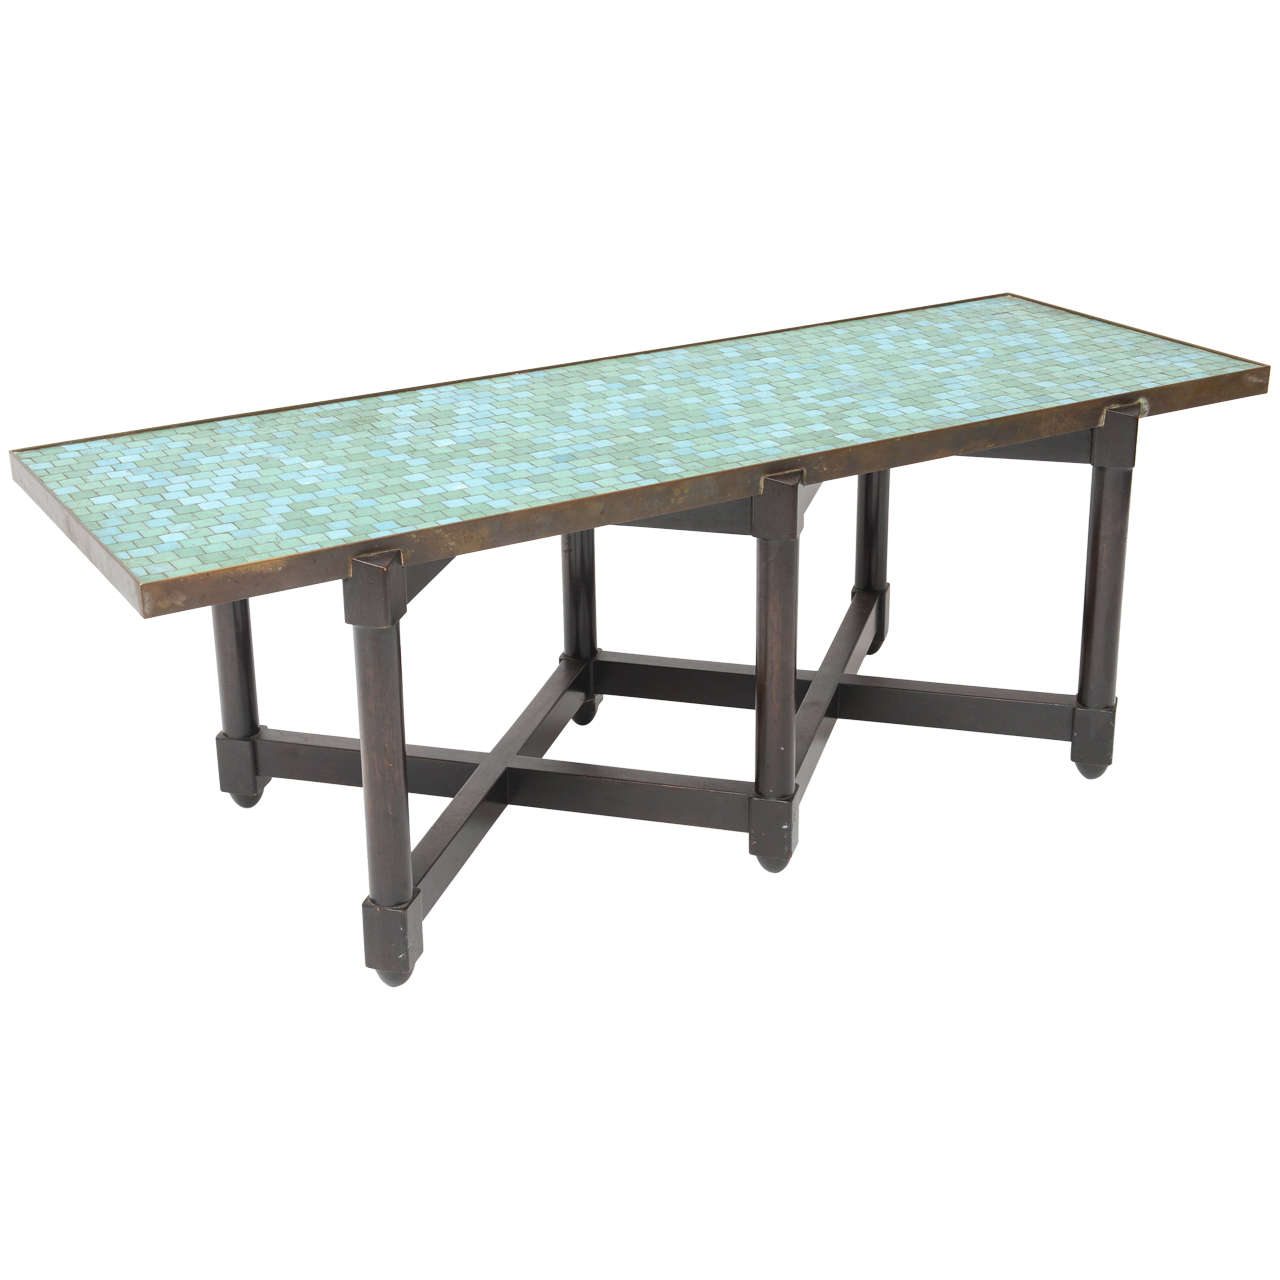 edward wormley tile top campaign coffee table for sale at. Black Bedroom Furniture Sets. Home Design Ideas